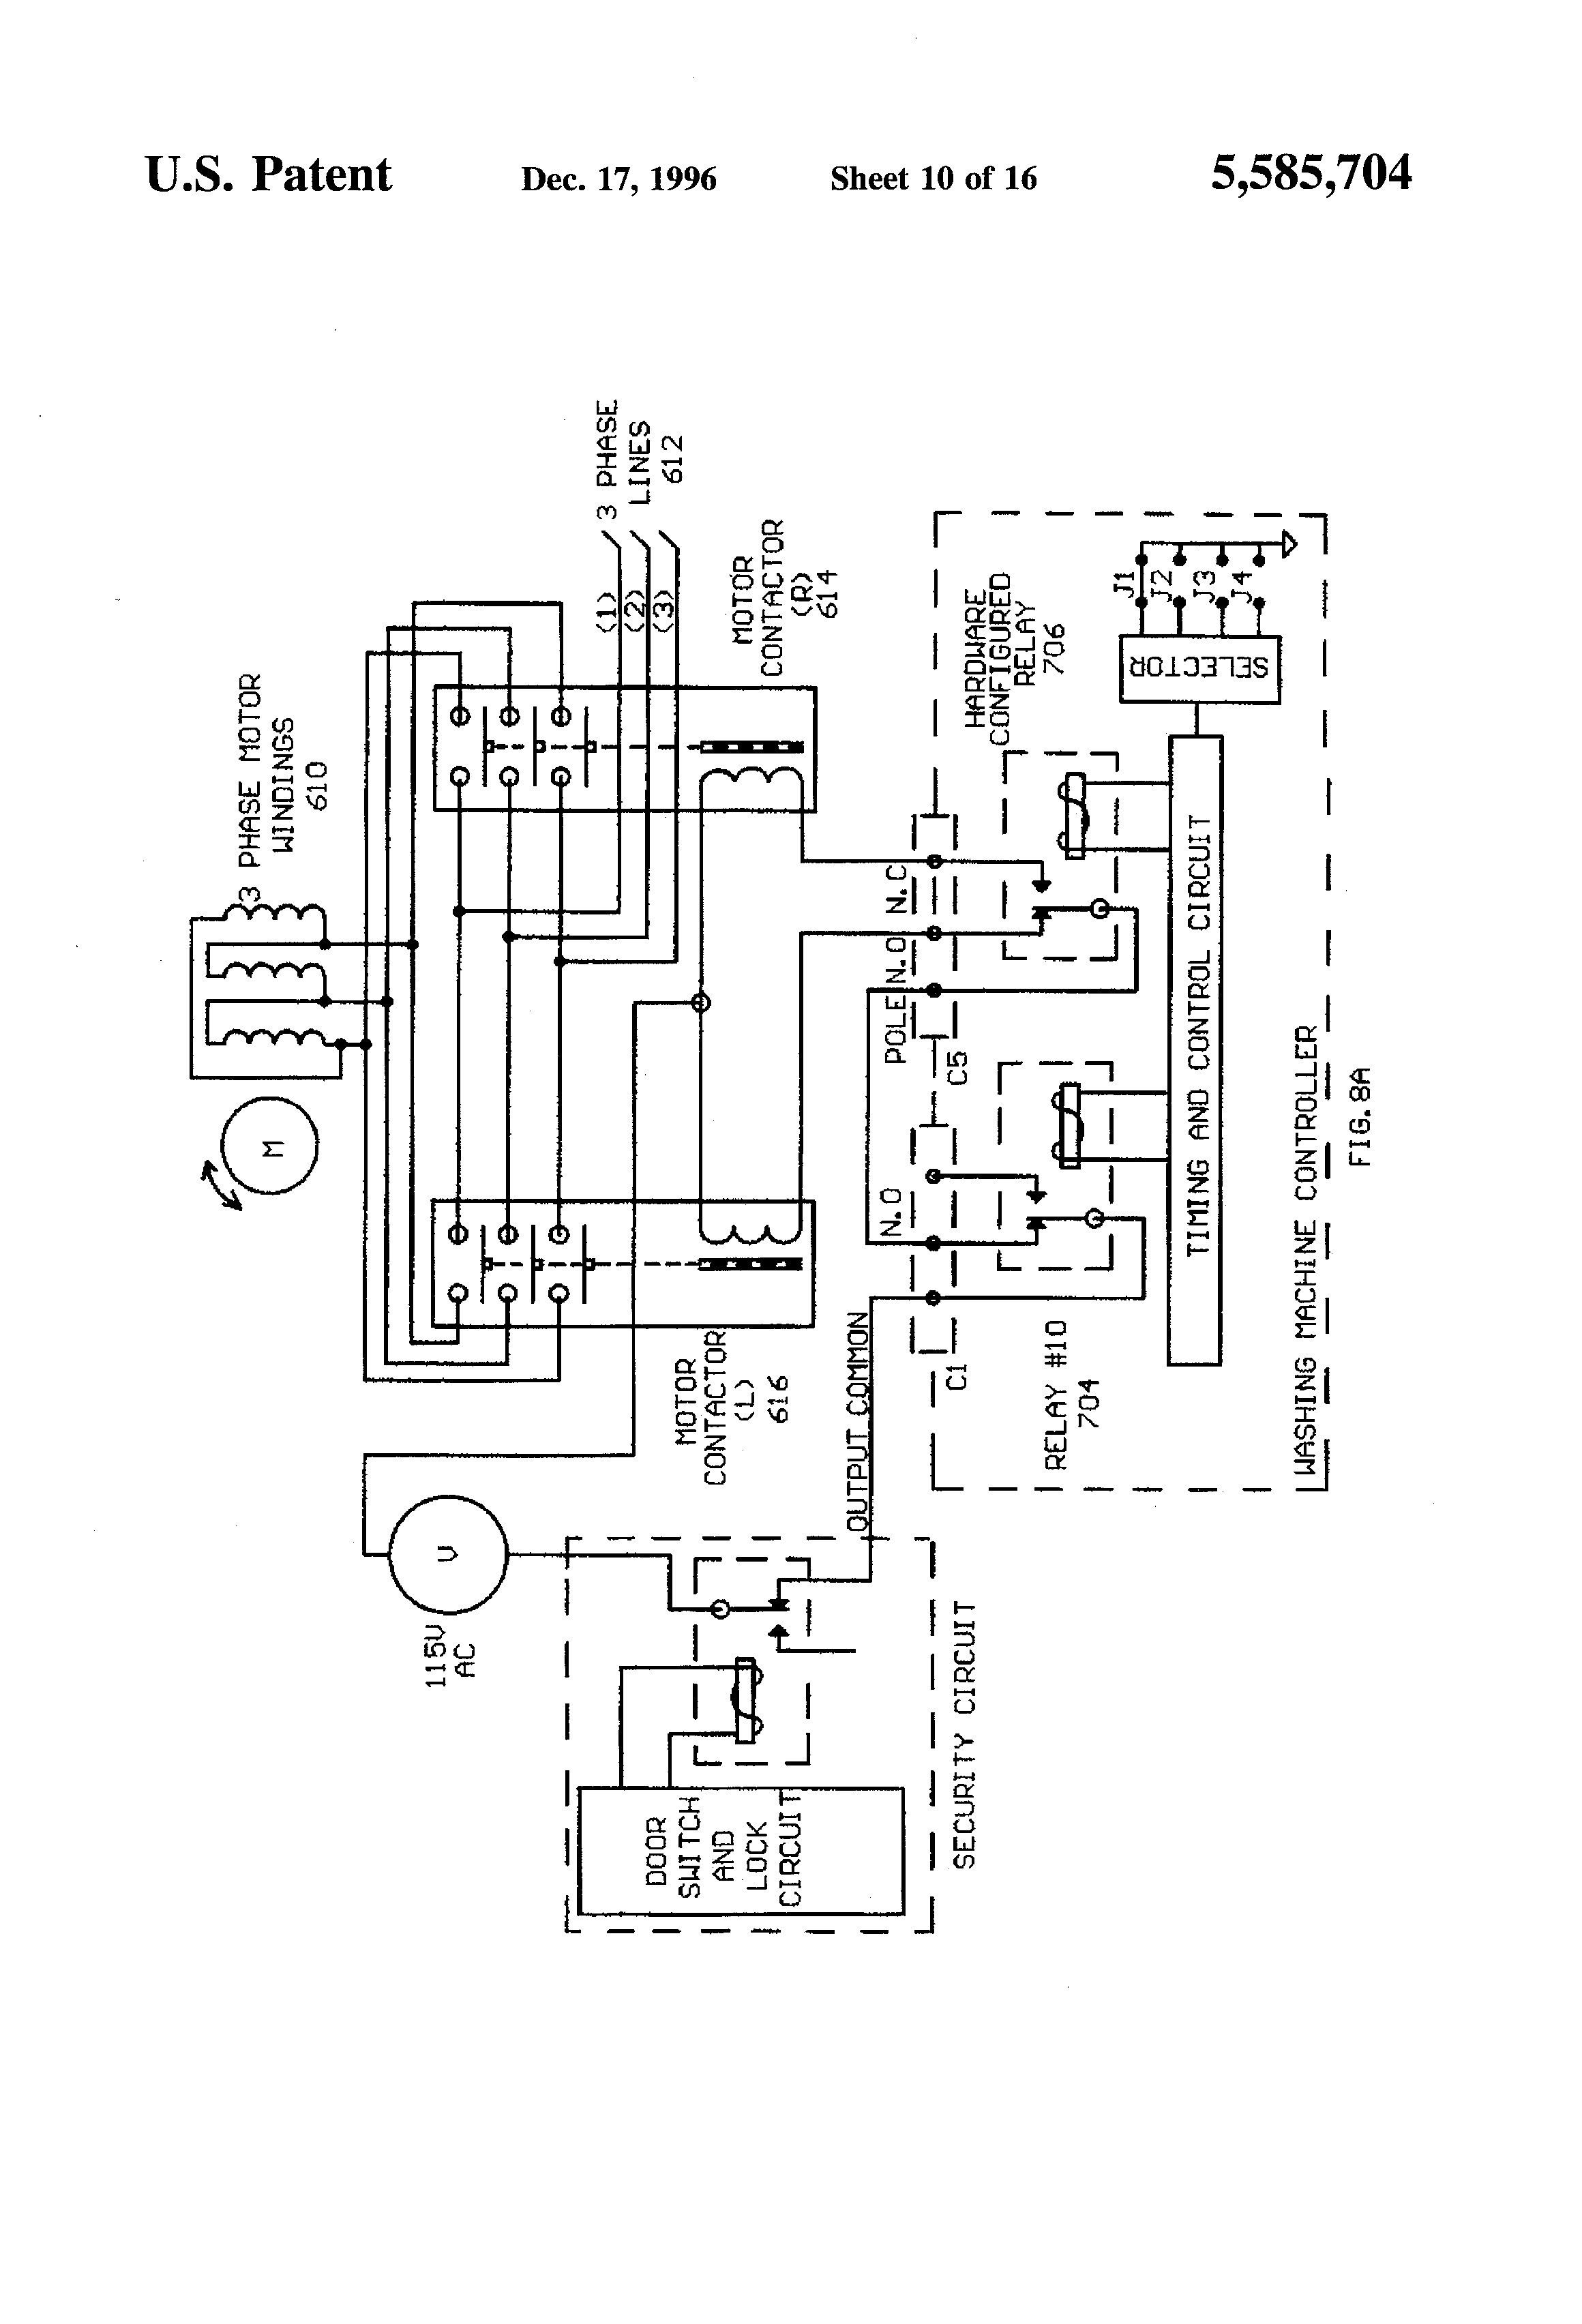 small resolution of wiring diagram car wash diagram diagramtemplate diagramsamplewiring diagram car wash diagram diagramtemplate diagramsample